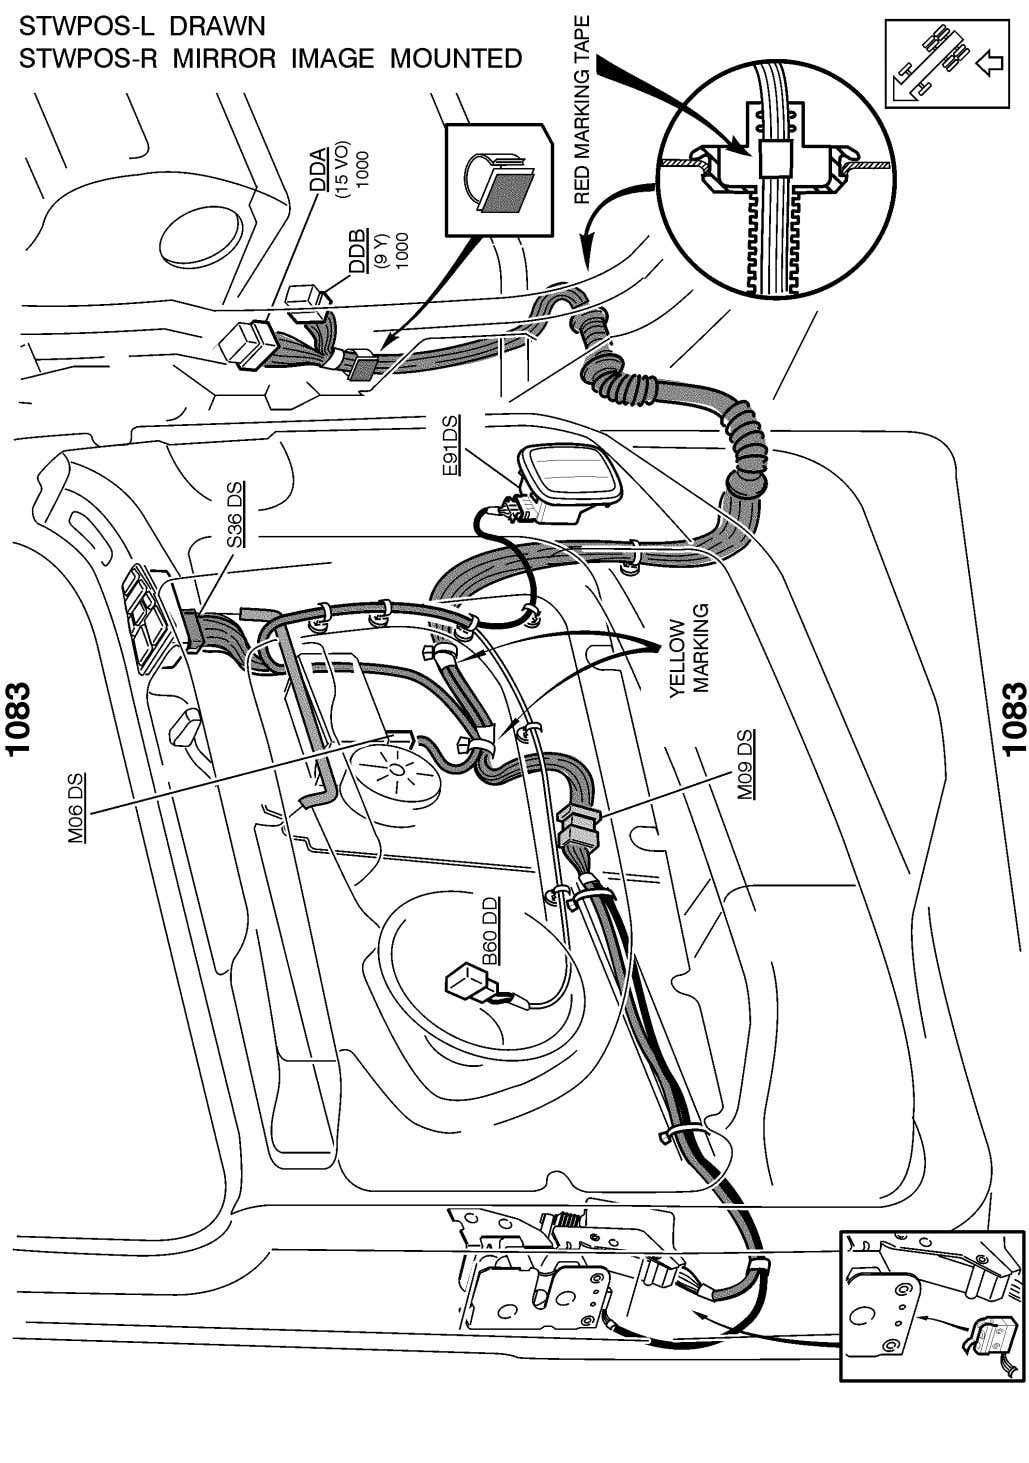 T3021654 Wiring diagram Page 183 (298)